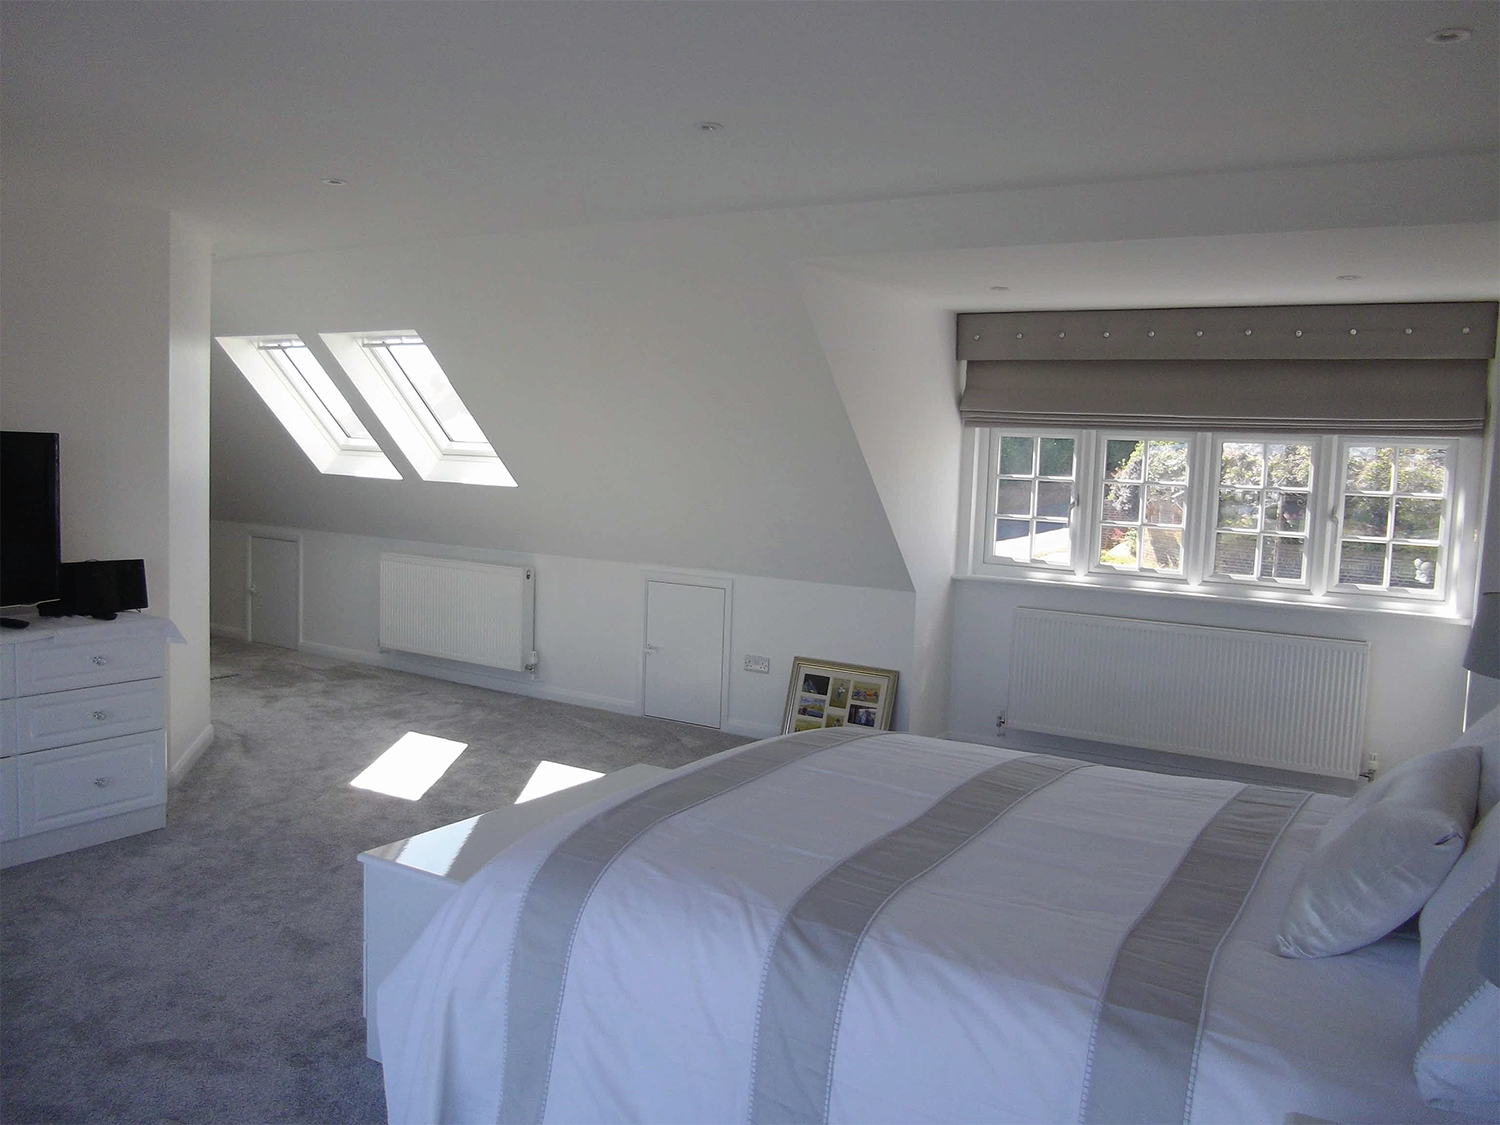 Loft conversion in Bishopstone09.png